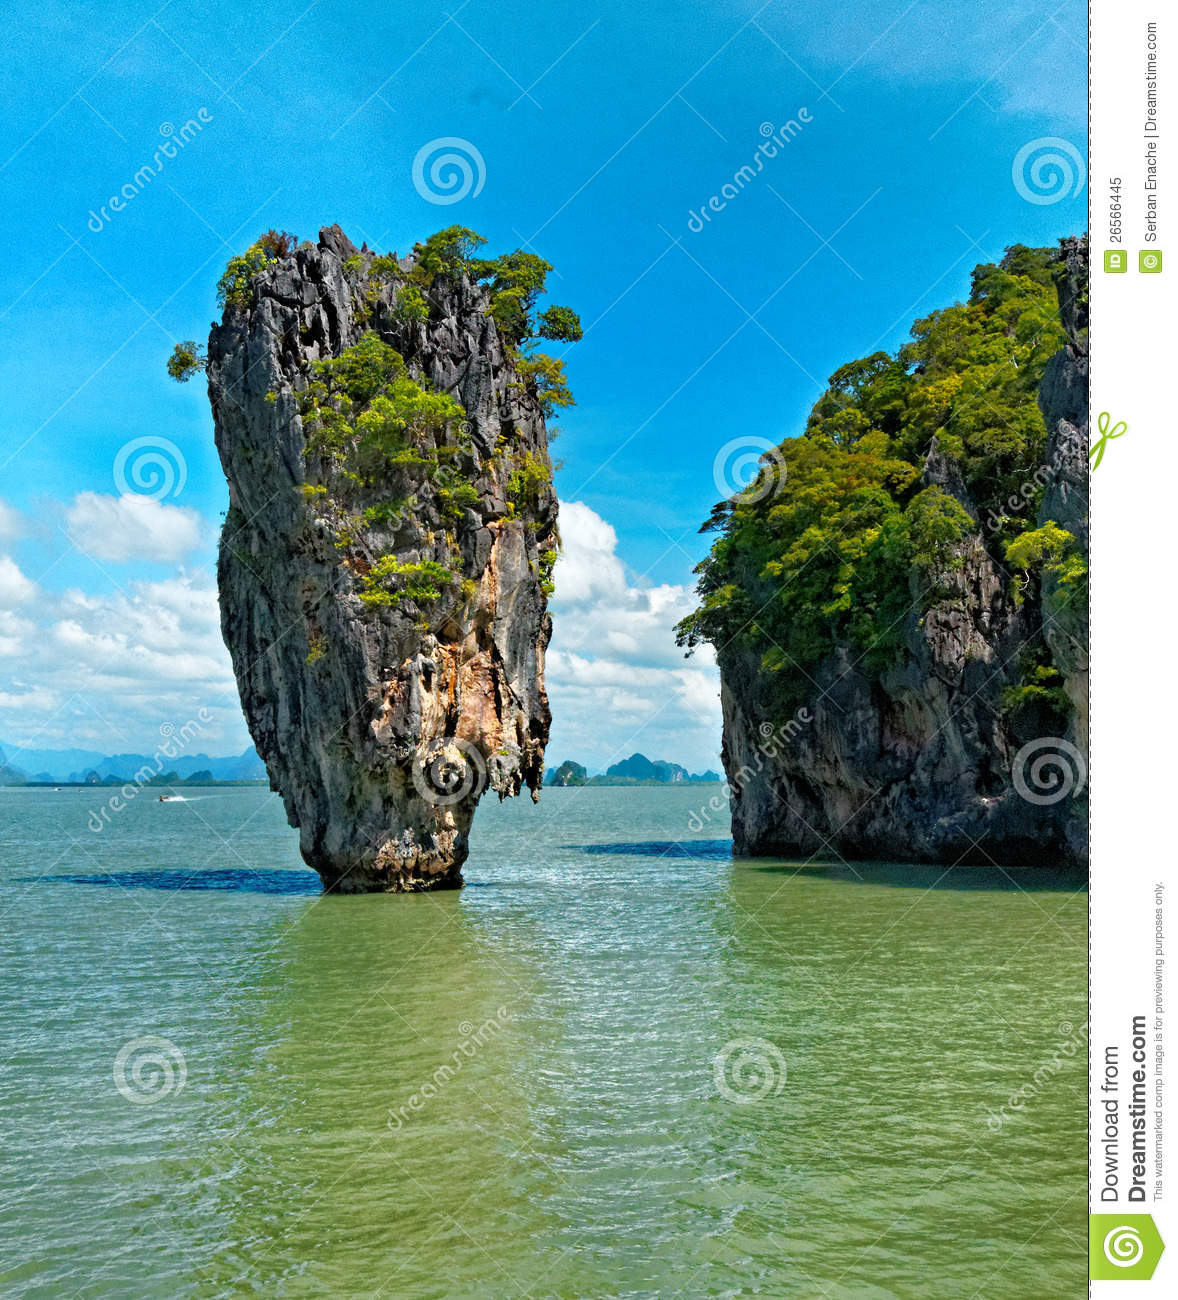 Khao Phing Kan clipart #3, Download drawings